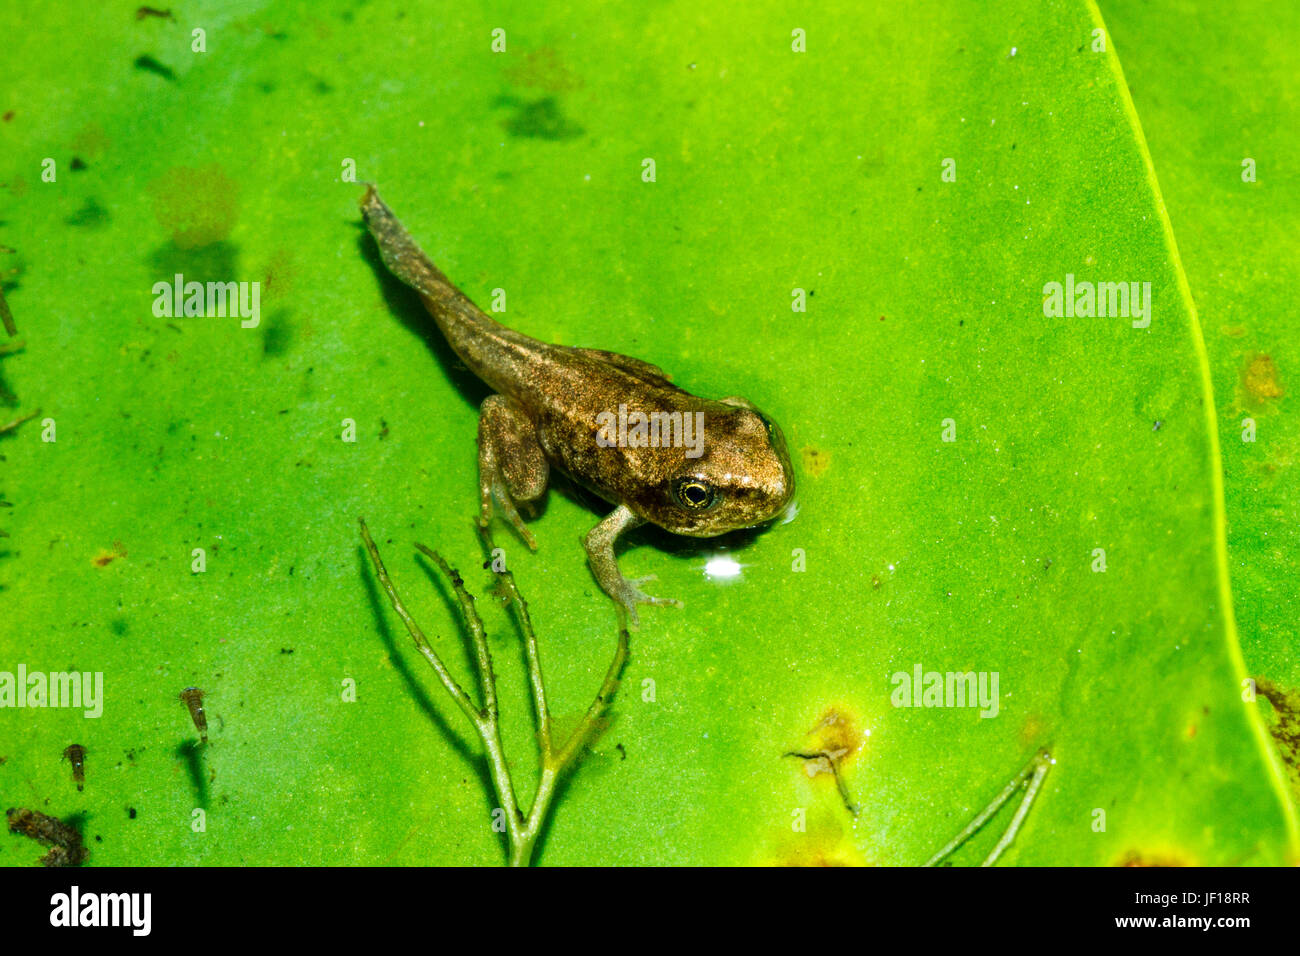 Froglet of the Common Frog (Rana temporaria) on a lily pad in a garden pond, East Sussex, UK - Stock Image